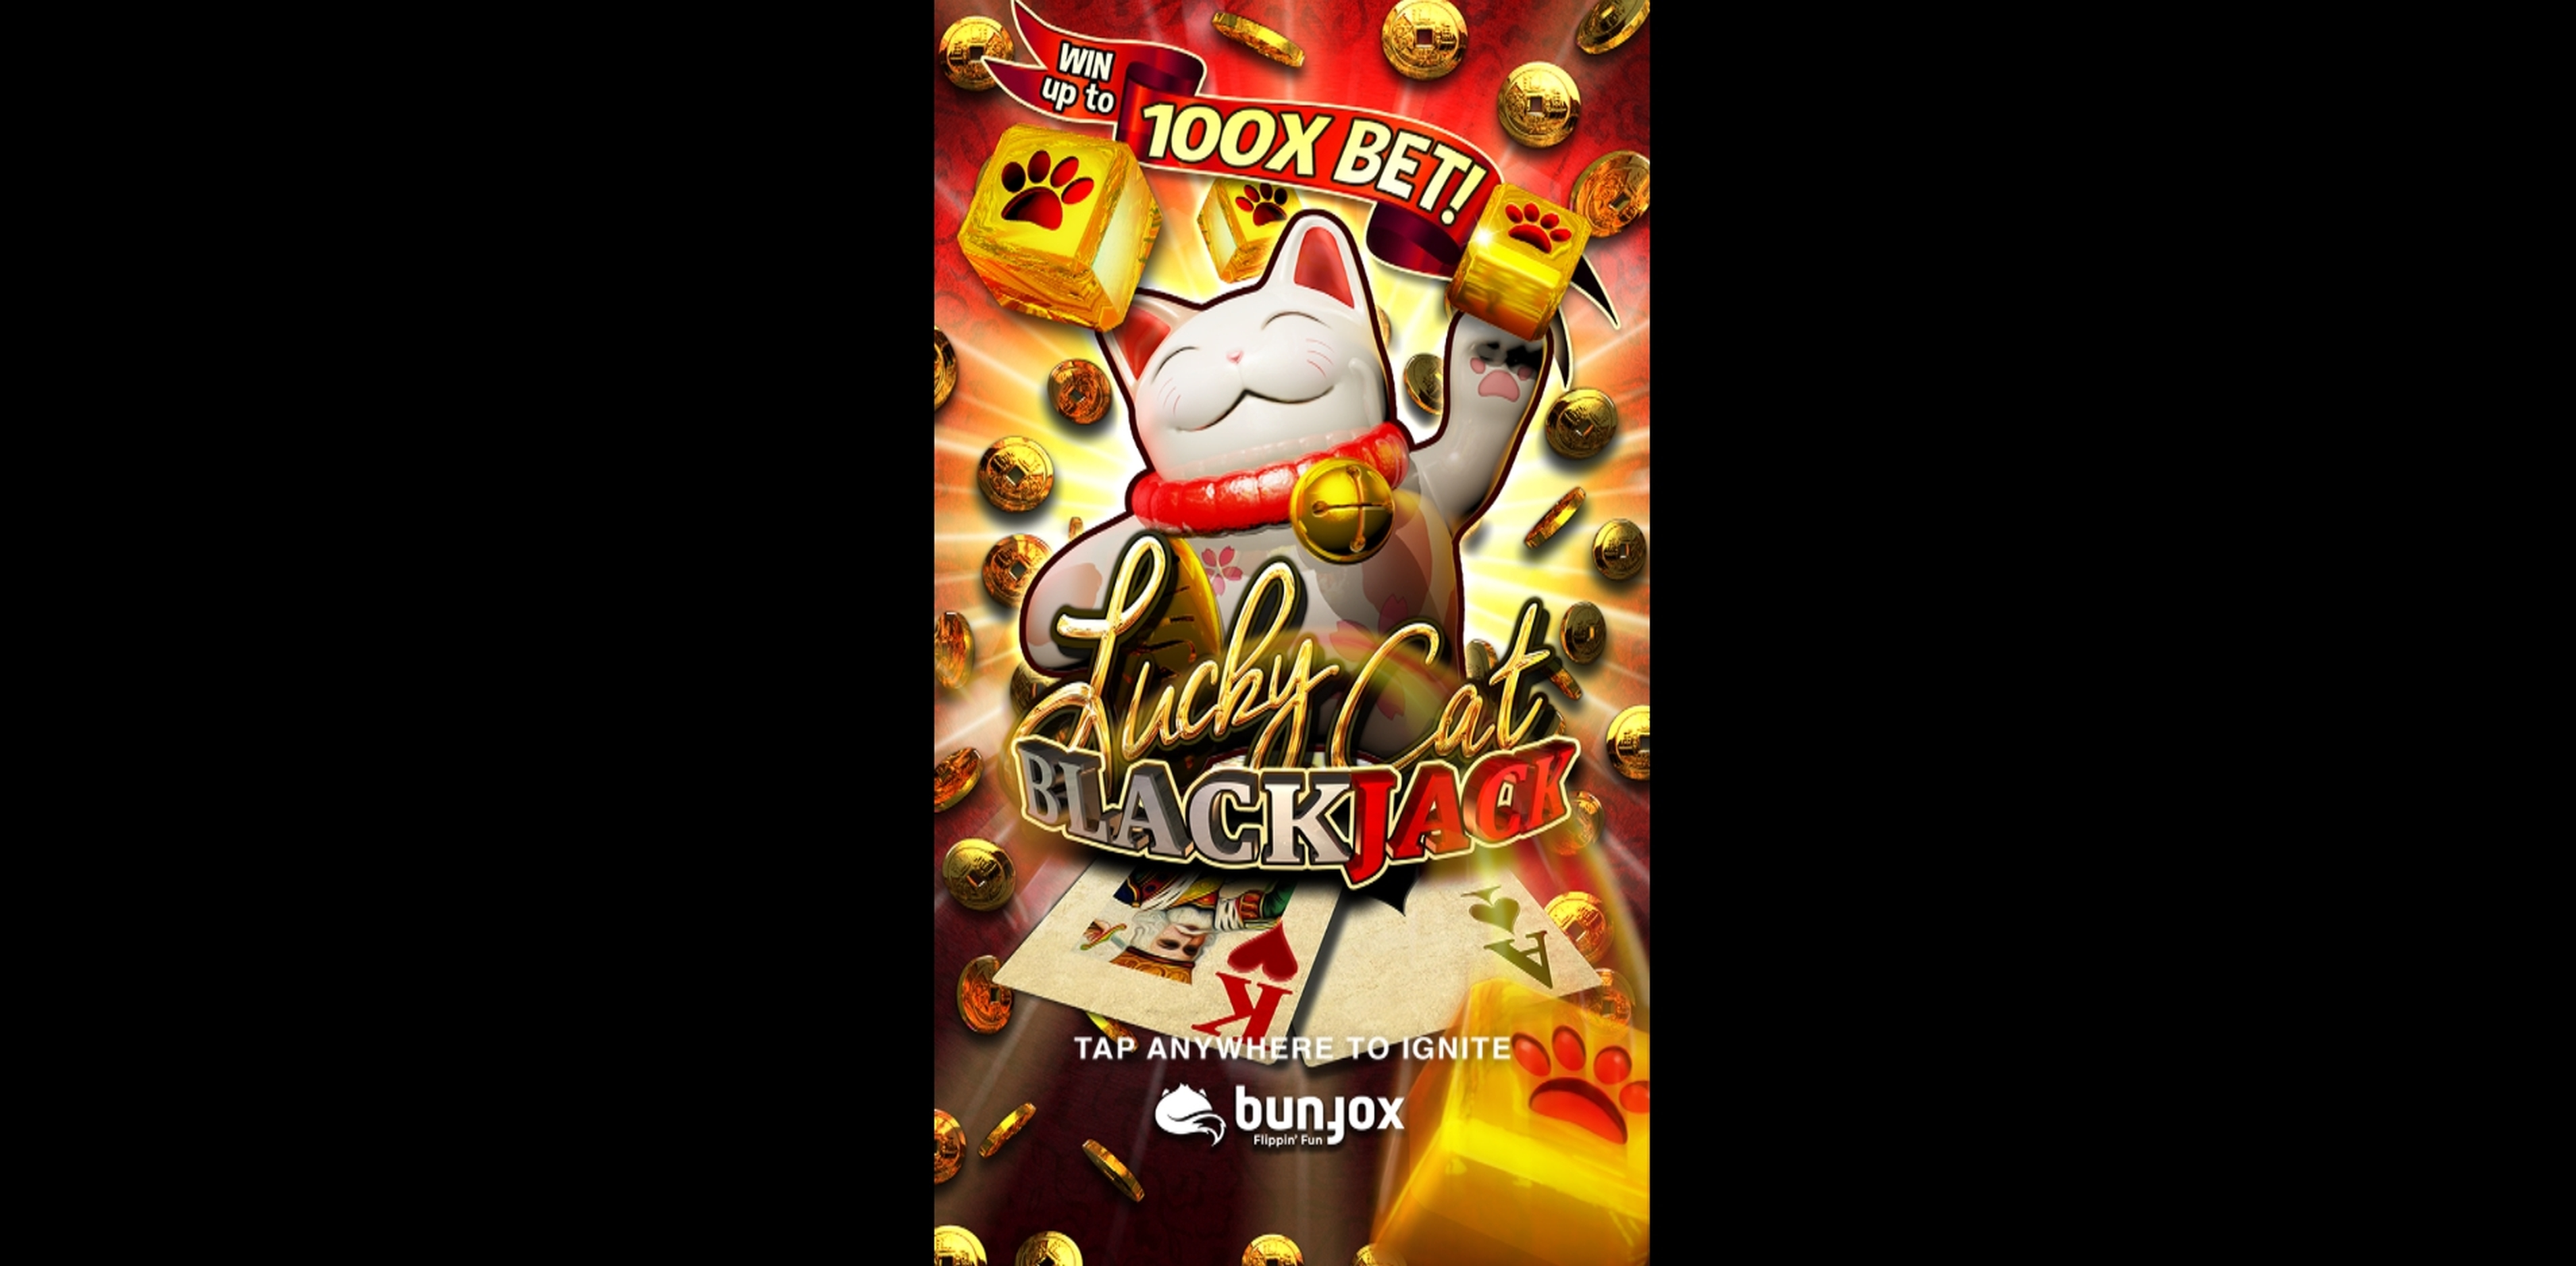 Play Lucky Cat Blackjack Free Casino Slot Game by Bunfox